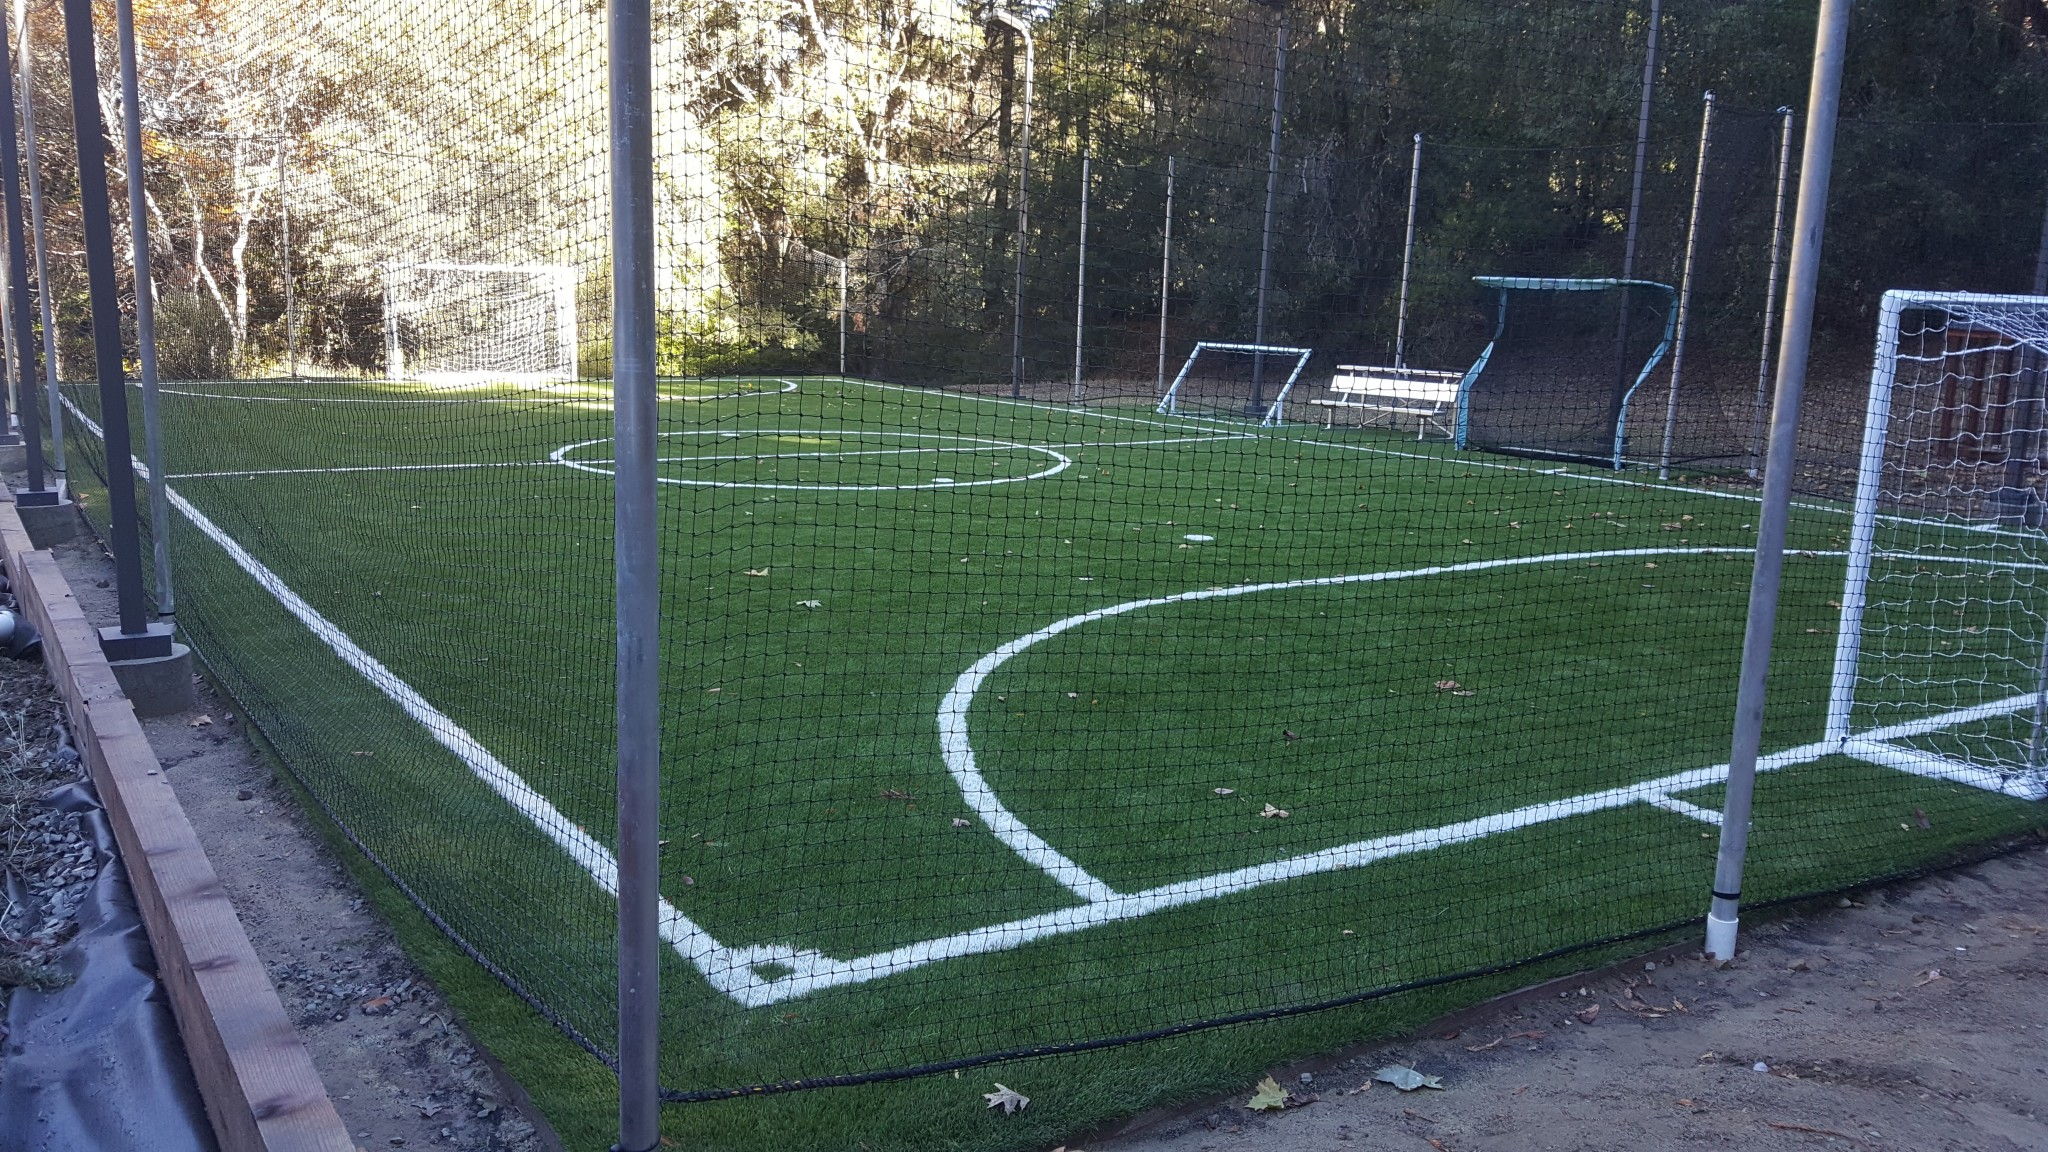 Charmant Soccer Field After